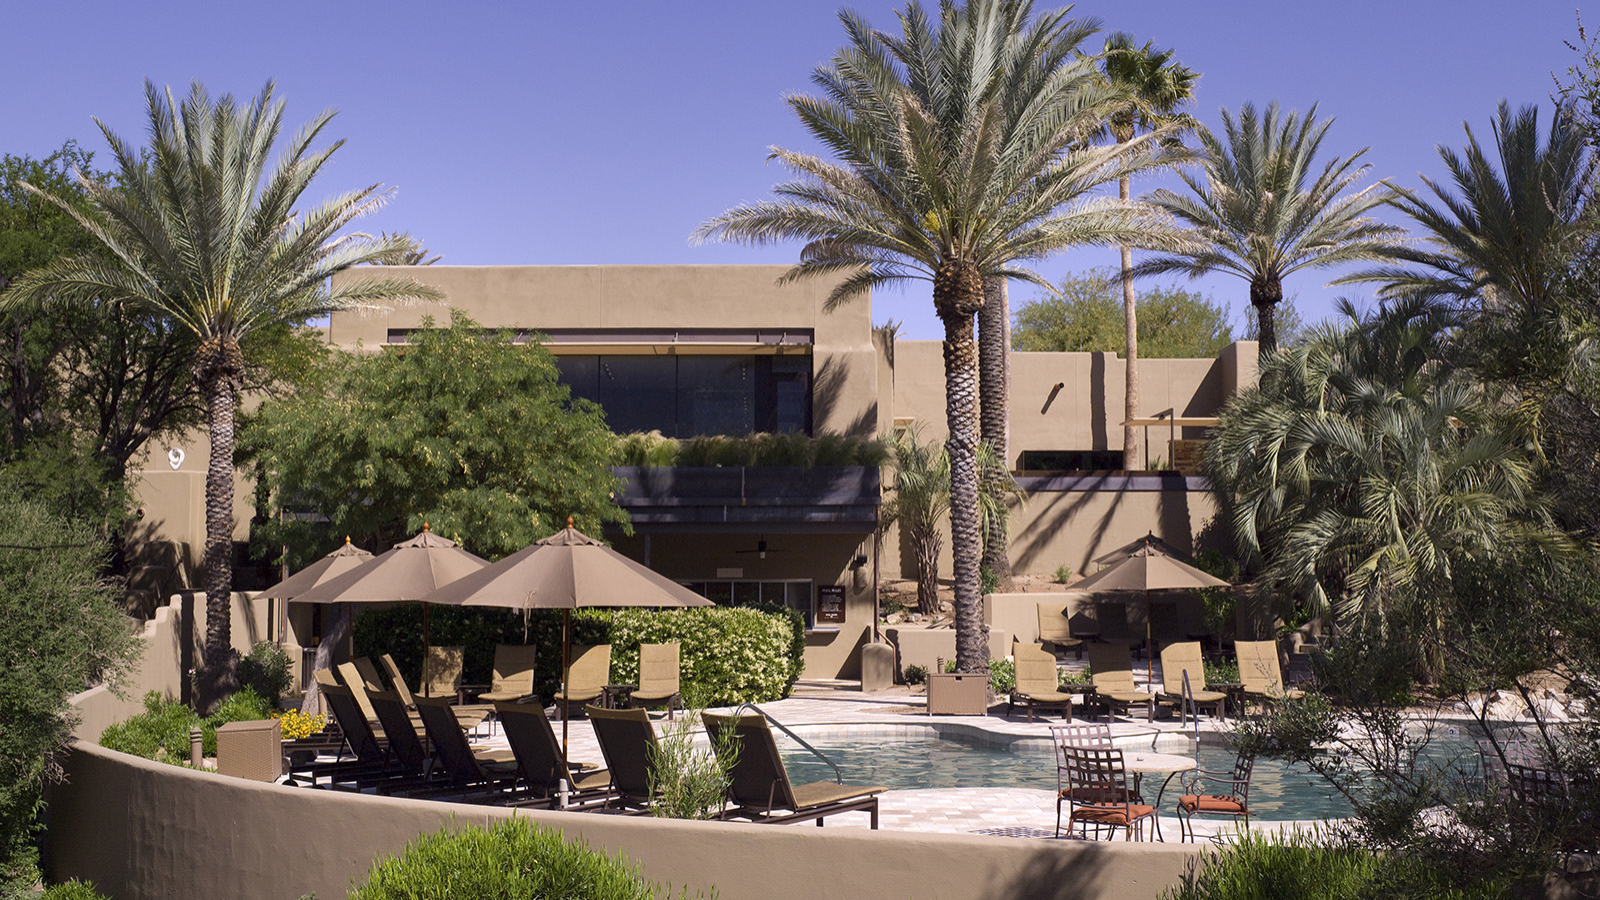 chairs and umbrellas around the pool at miraval arizona resort & spa